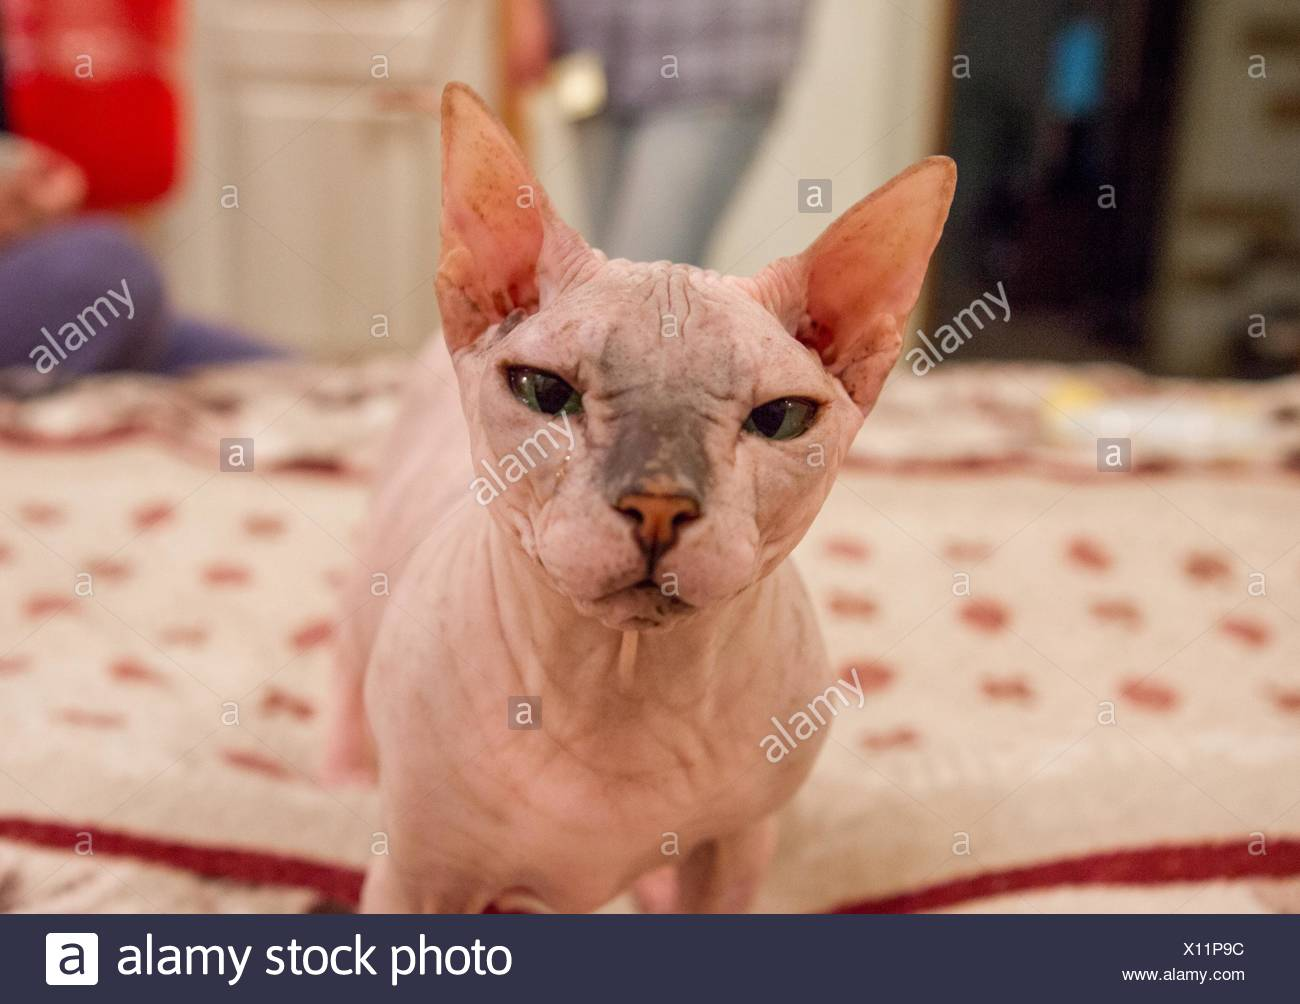 Sphynx Hairless Cat - Stock Image